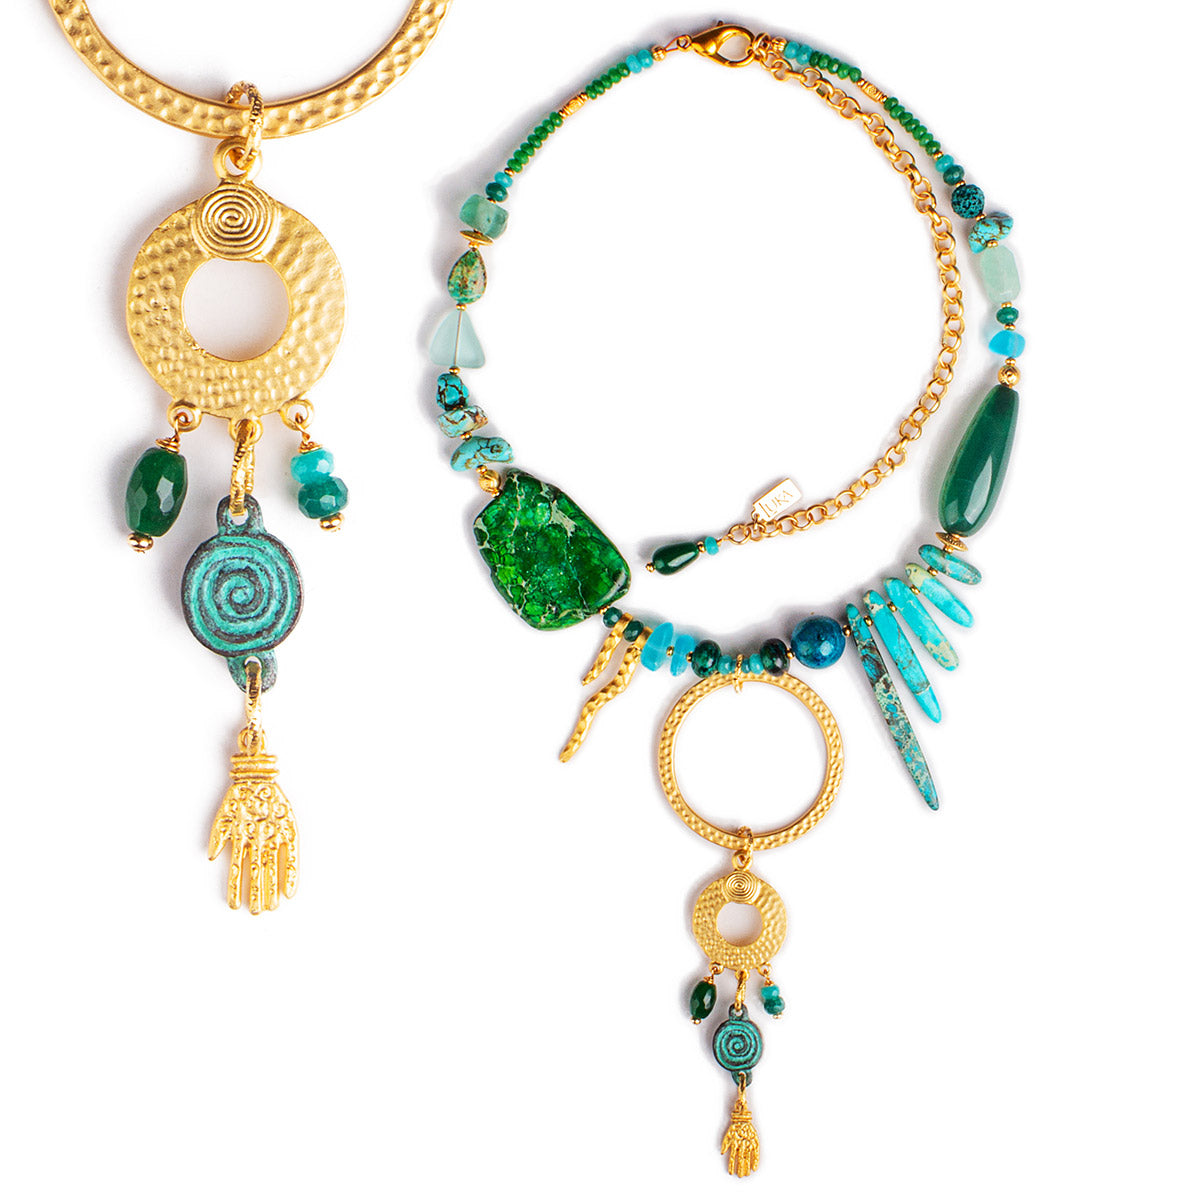 N°686 The Living Sea of Turquoise Dreams Statement Necklace